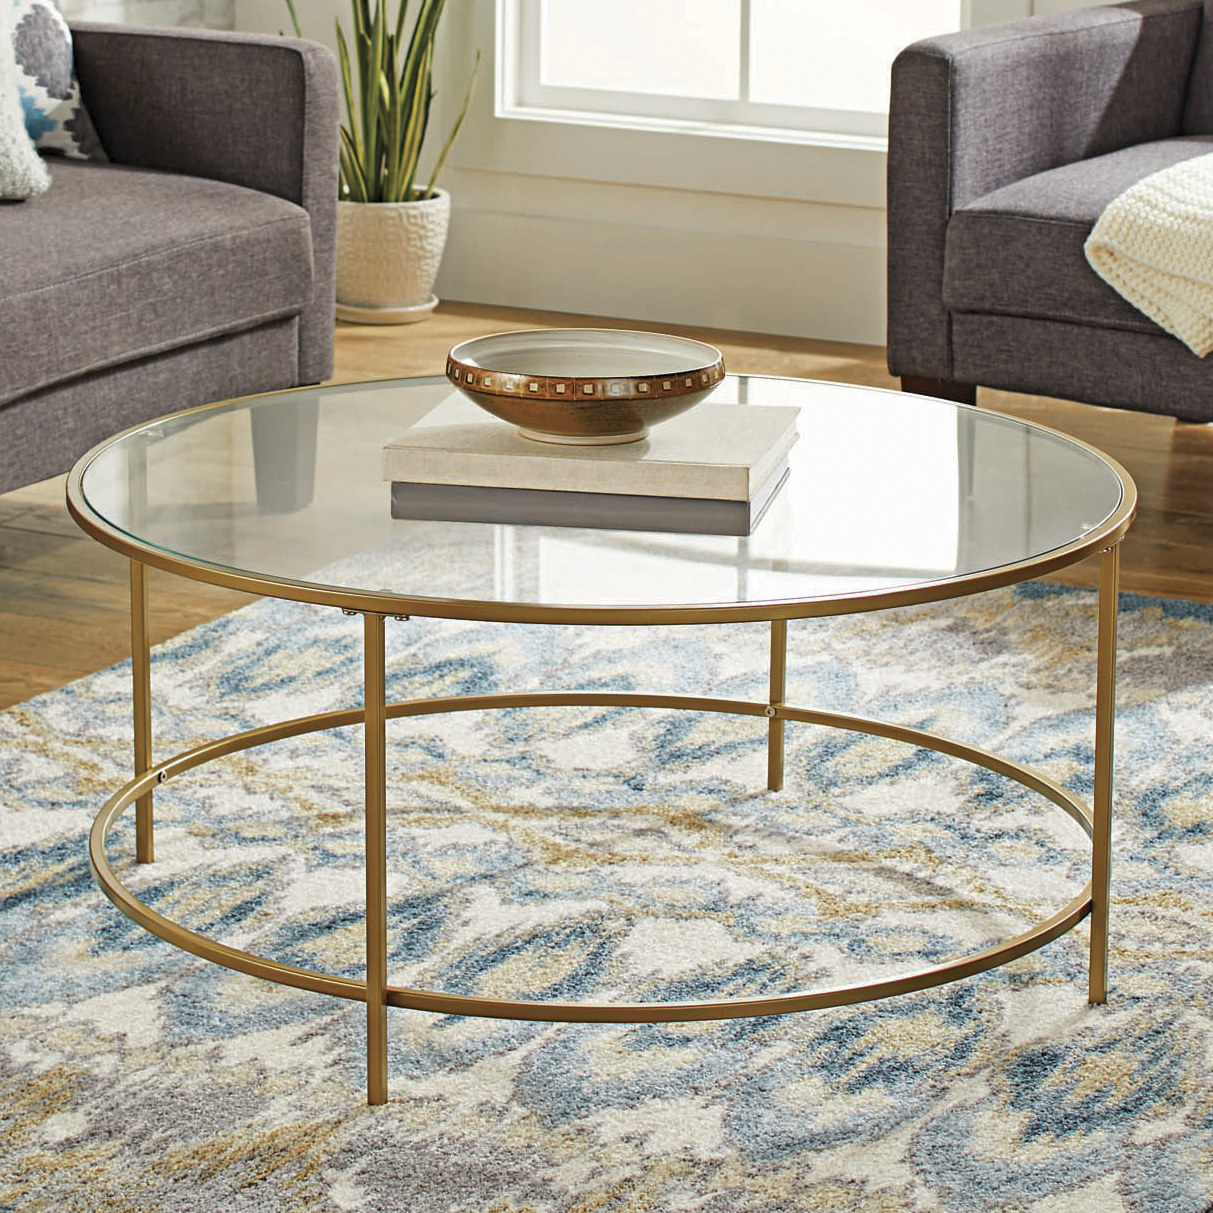 The table, which is circular, with a round, metal frame, four legs, and a circle of safety glass as the top